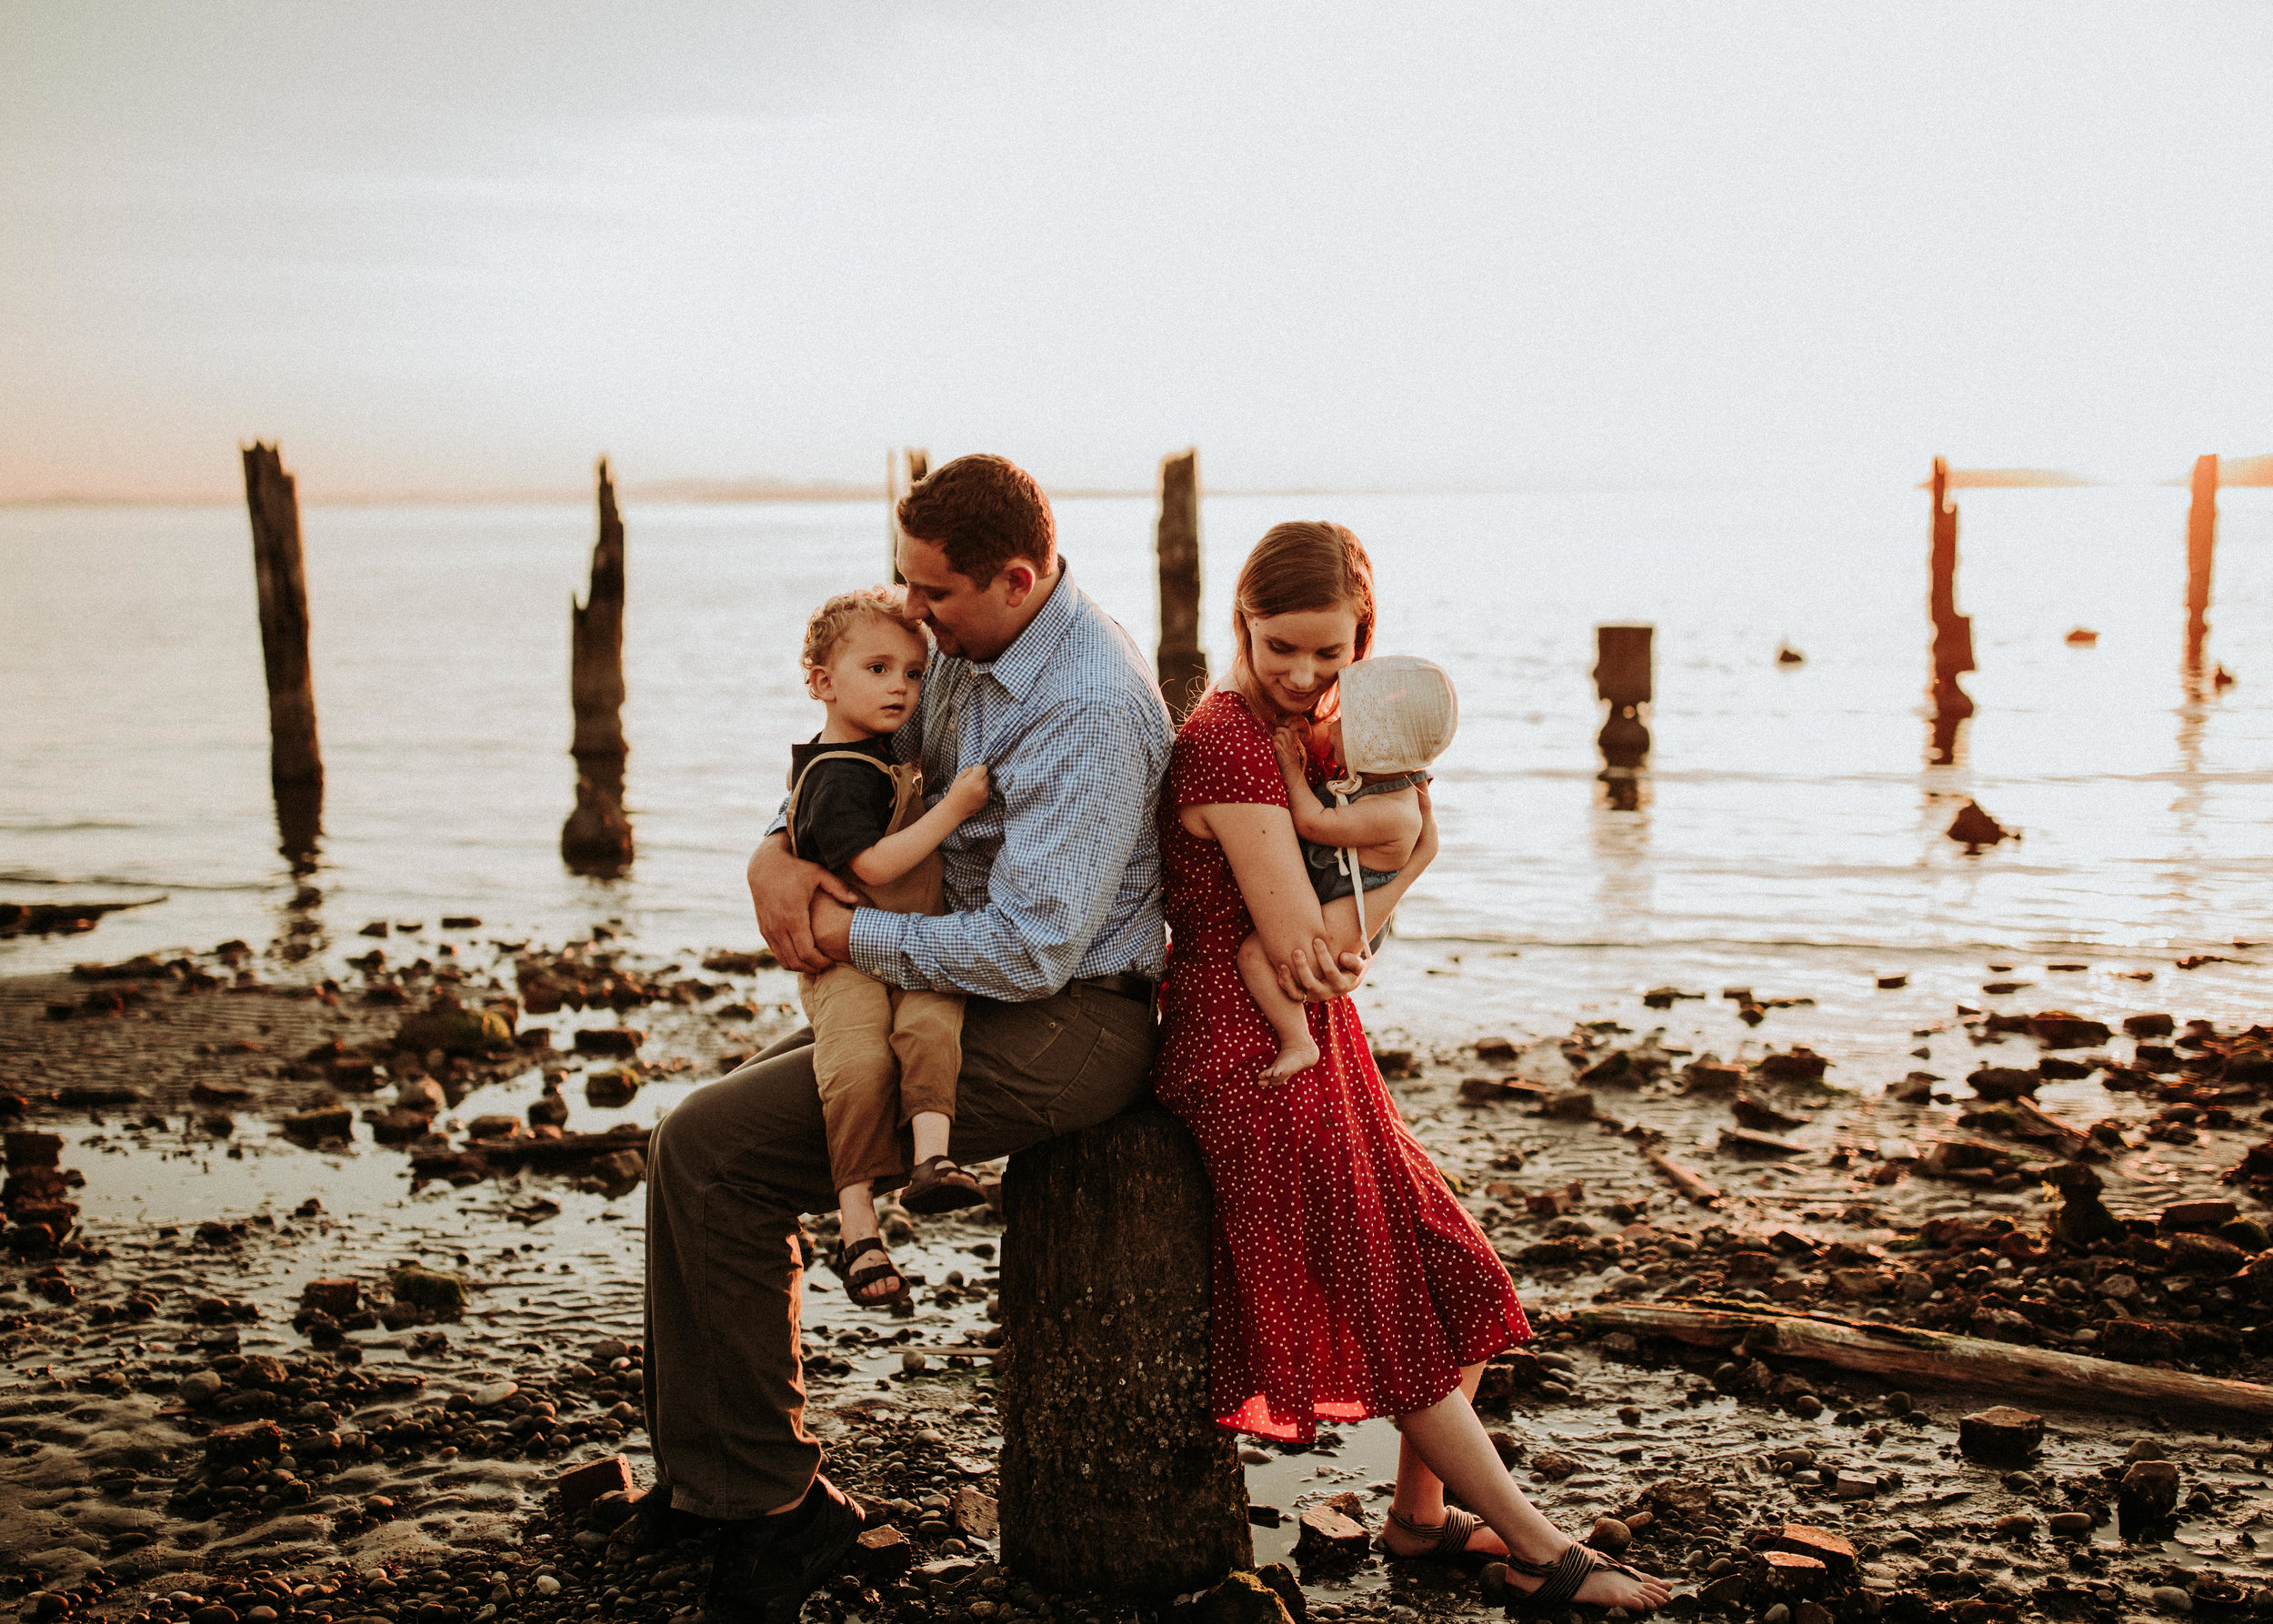 Family-Photographer-Bellingham-WA-Brianne-Bell-Photograpy-(Andrea)-24.jpg